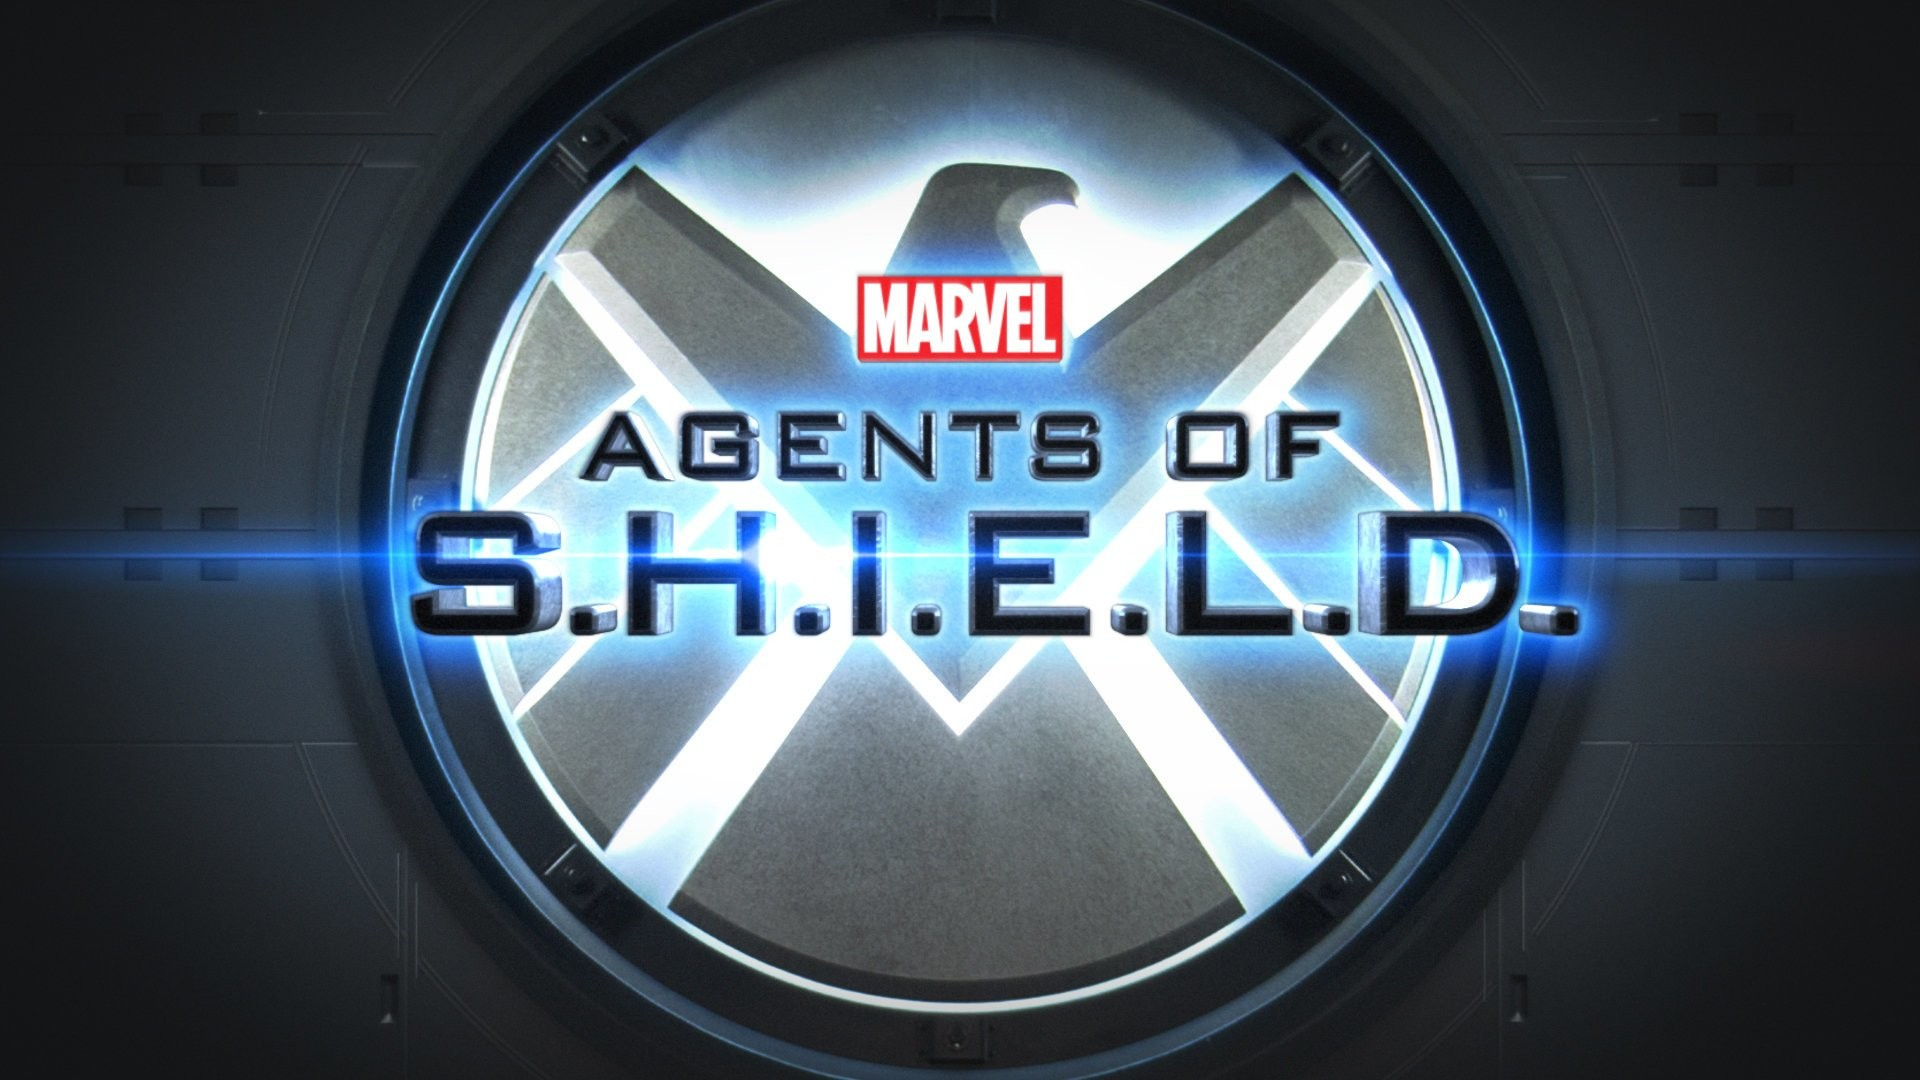 1920x1080 HD Wallpaper | Background Image ID:600091.  TV Show Marvel's  Agents of S.H.I.E.L.D.